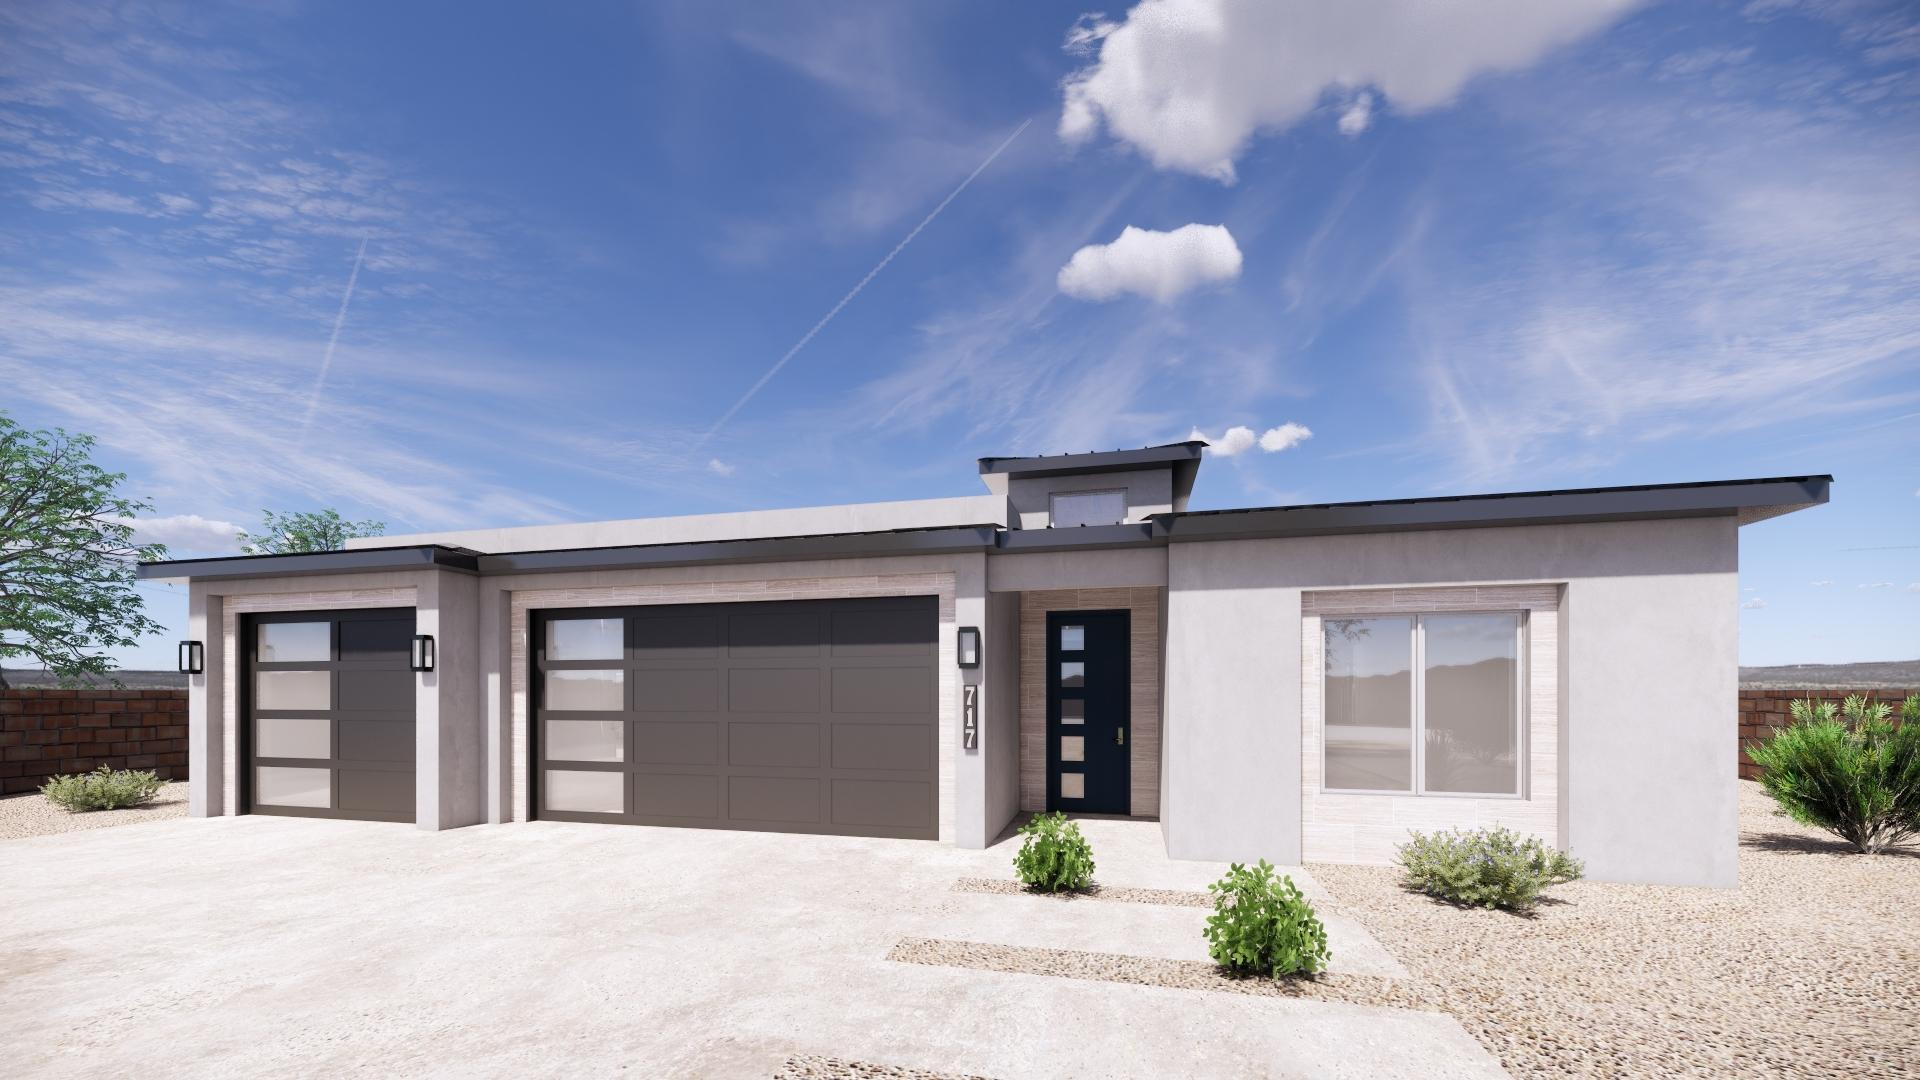 Your New Rio Rancho modern contemporary home is under construction! This home features 3 bedrooms, 2 bathrooms, and a 3 car garage on a half acre ready for your backyard creation. Luxury vinyl flooring throughout, with a gourmet chen you will be anxious to cook in! From the black countertops to the grey cabinets, all pulled together with stainless steel appliances and eye catching backsplash this kitchen is the modern feature that makes this home stand out. Call today to walk this home and see the finishes before its too late!